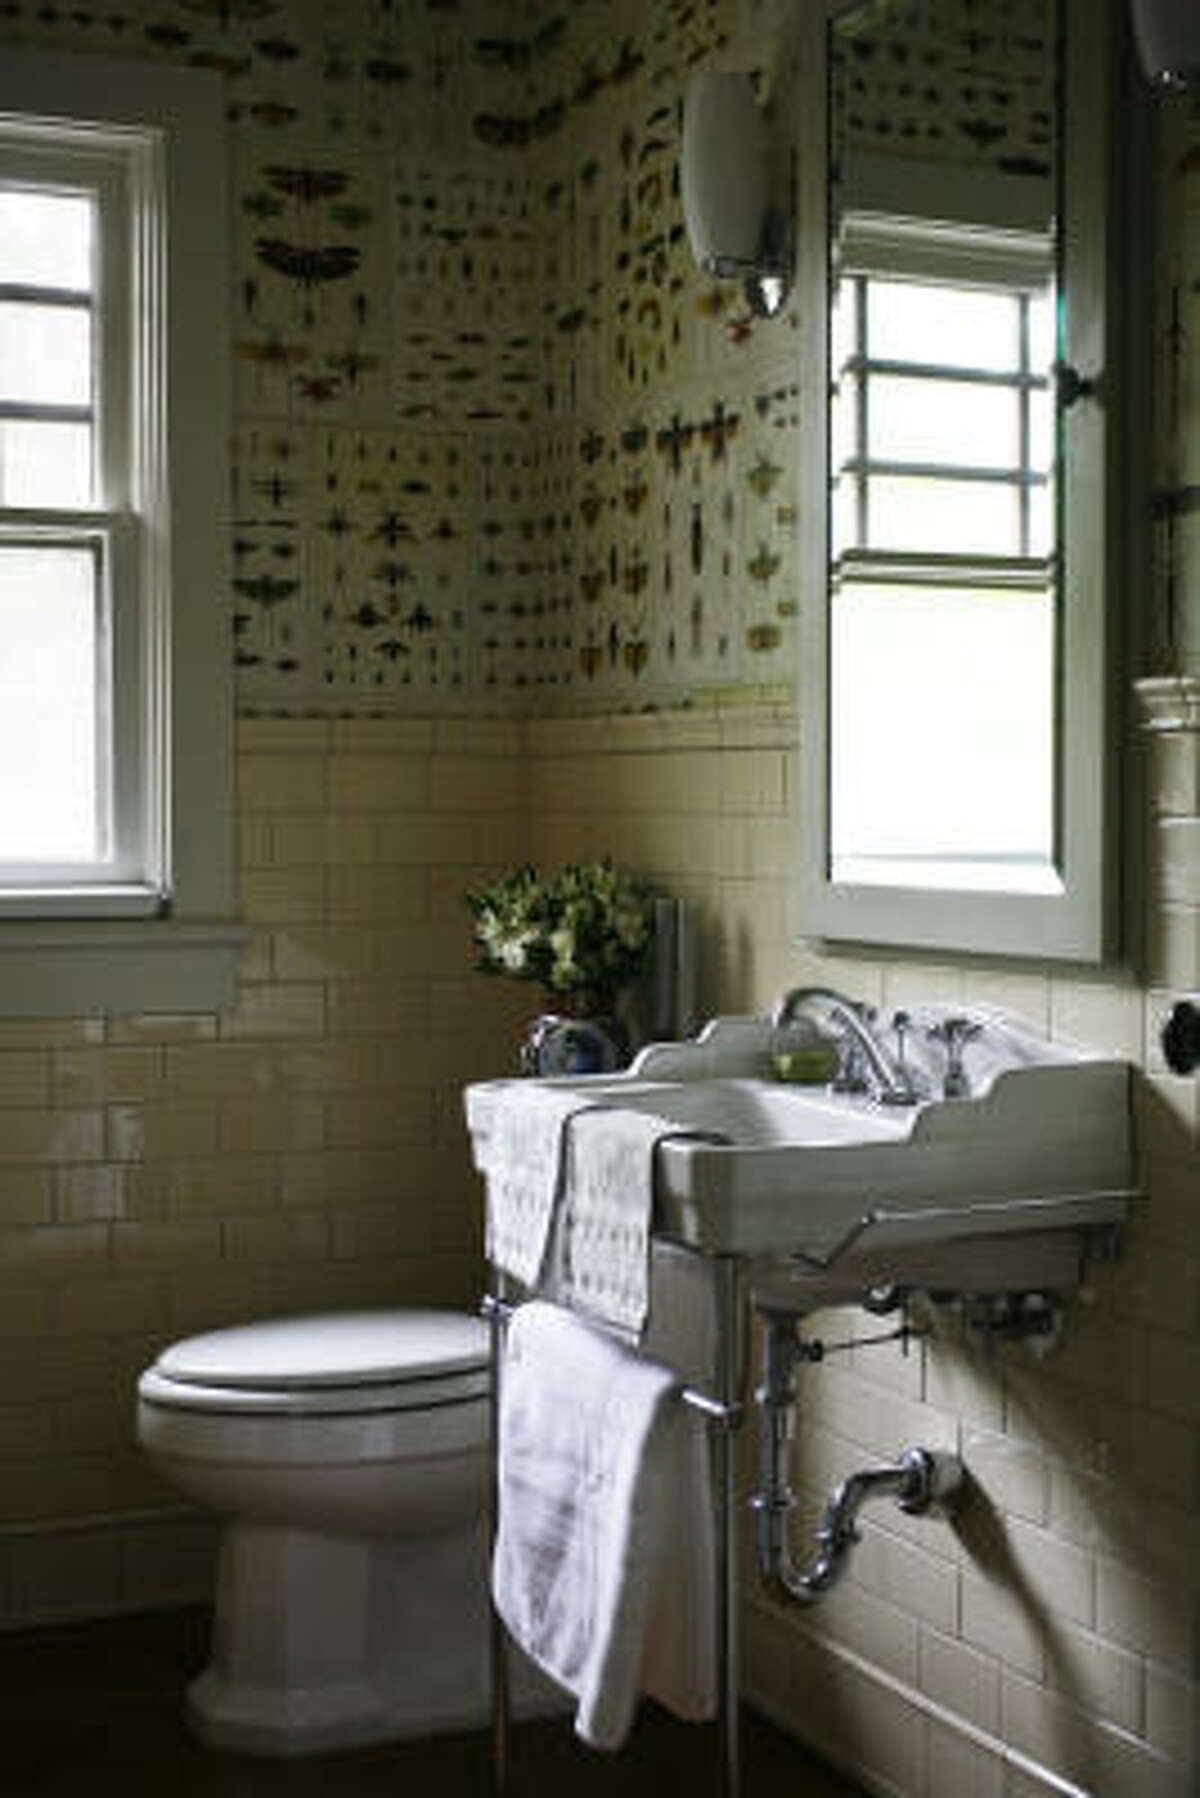 David Morello's bathroom is filled with cicadas, beetles, grasshoppers, dragonflies and bees.